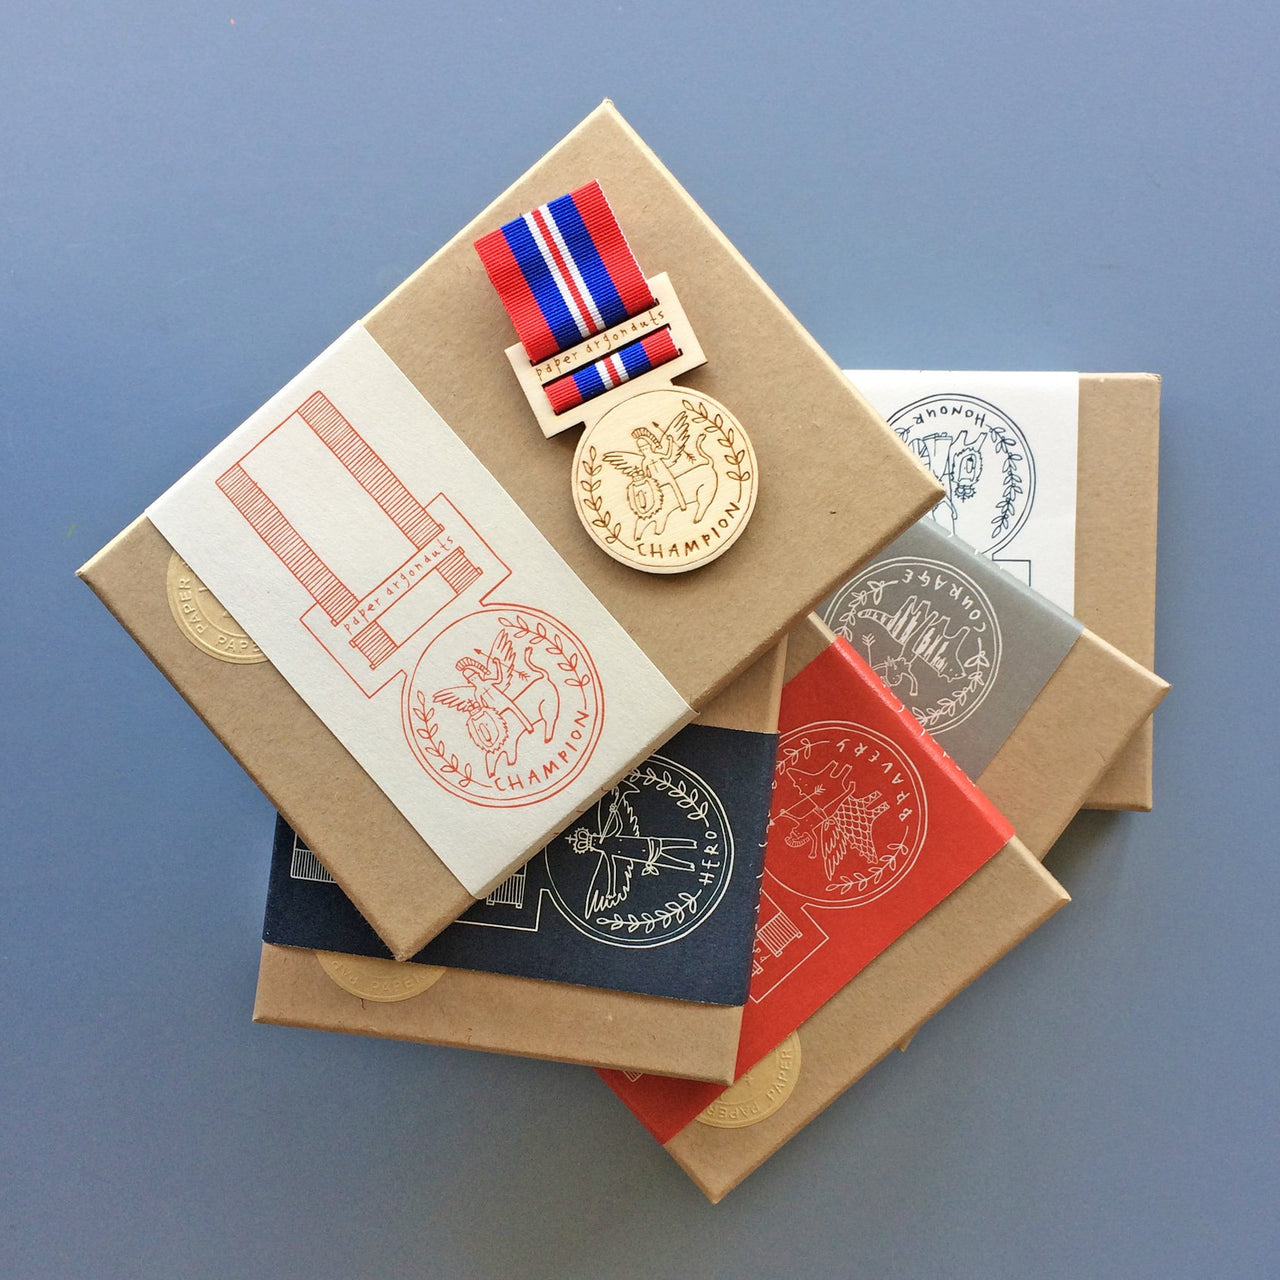 Limited edition wooden medals by Fiona Biddington aka Paper Argonauts at Soma Gallery